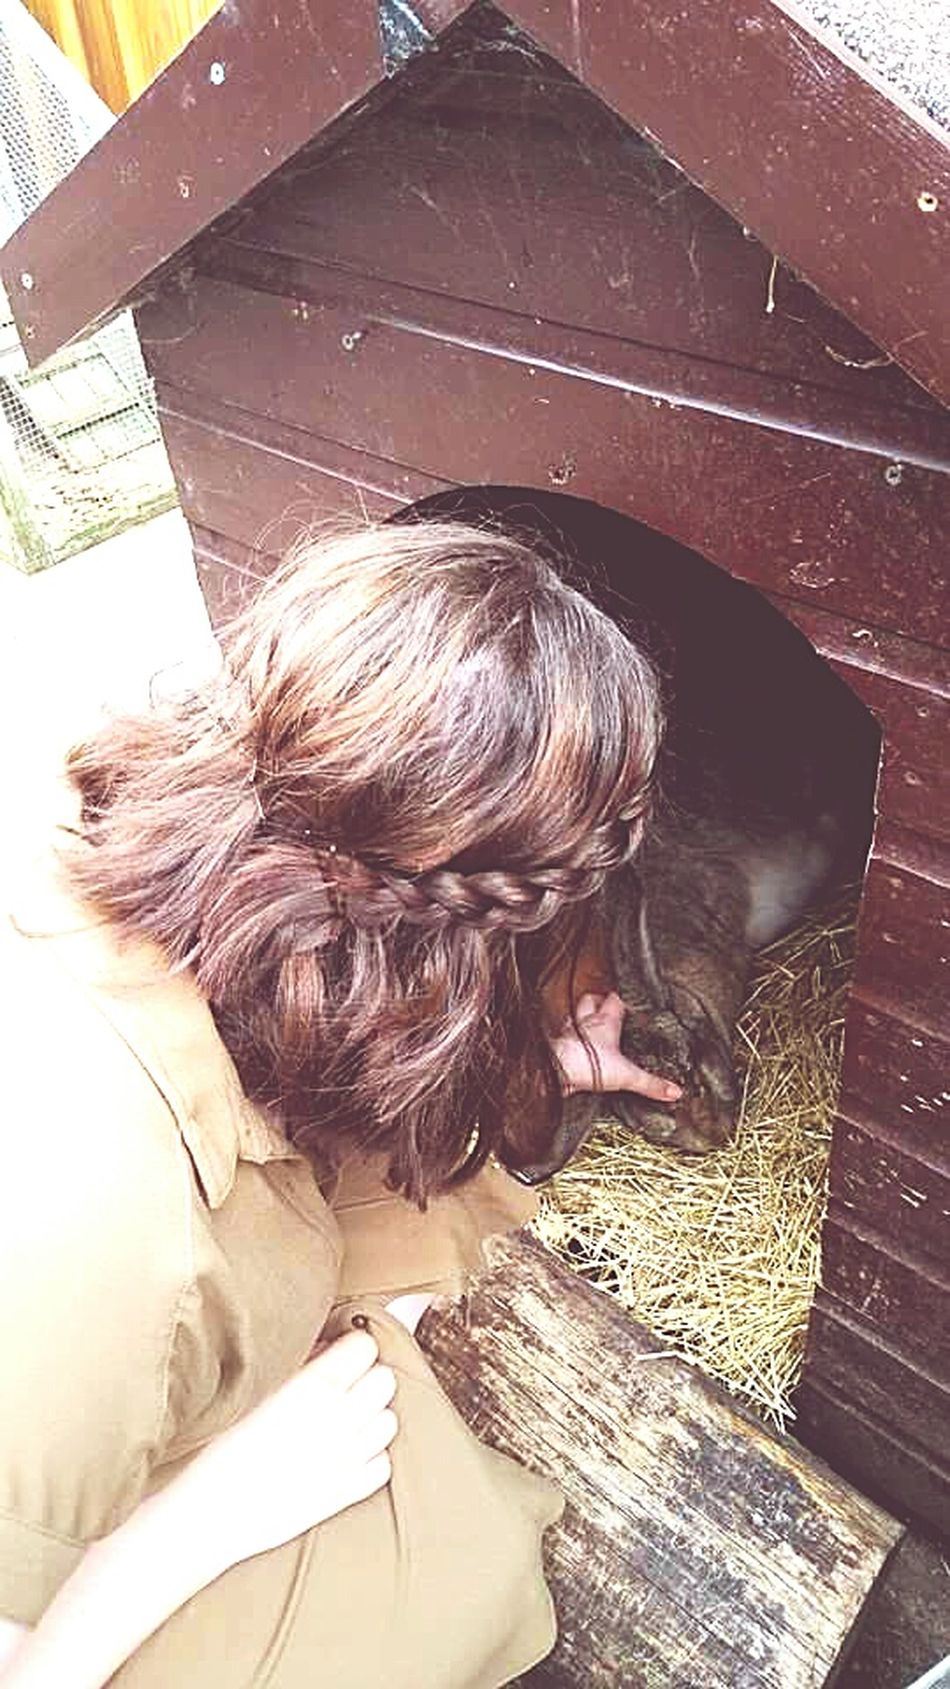 I played with a giant rabbit today. Then washed my hand a zillion times Rabbit Petting Zoo Five Sisters Zoo Zoo Giant Rabbit Day Out Aunty Short Hair Plait Good Hair